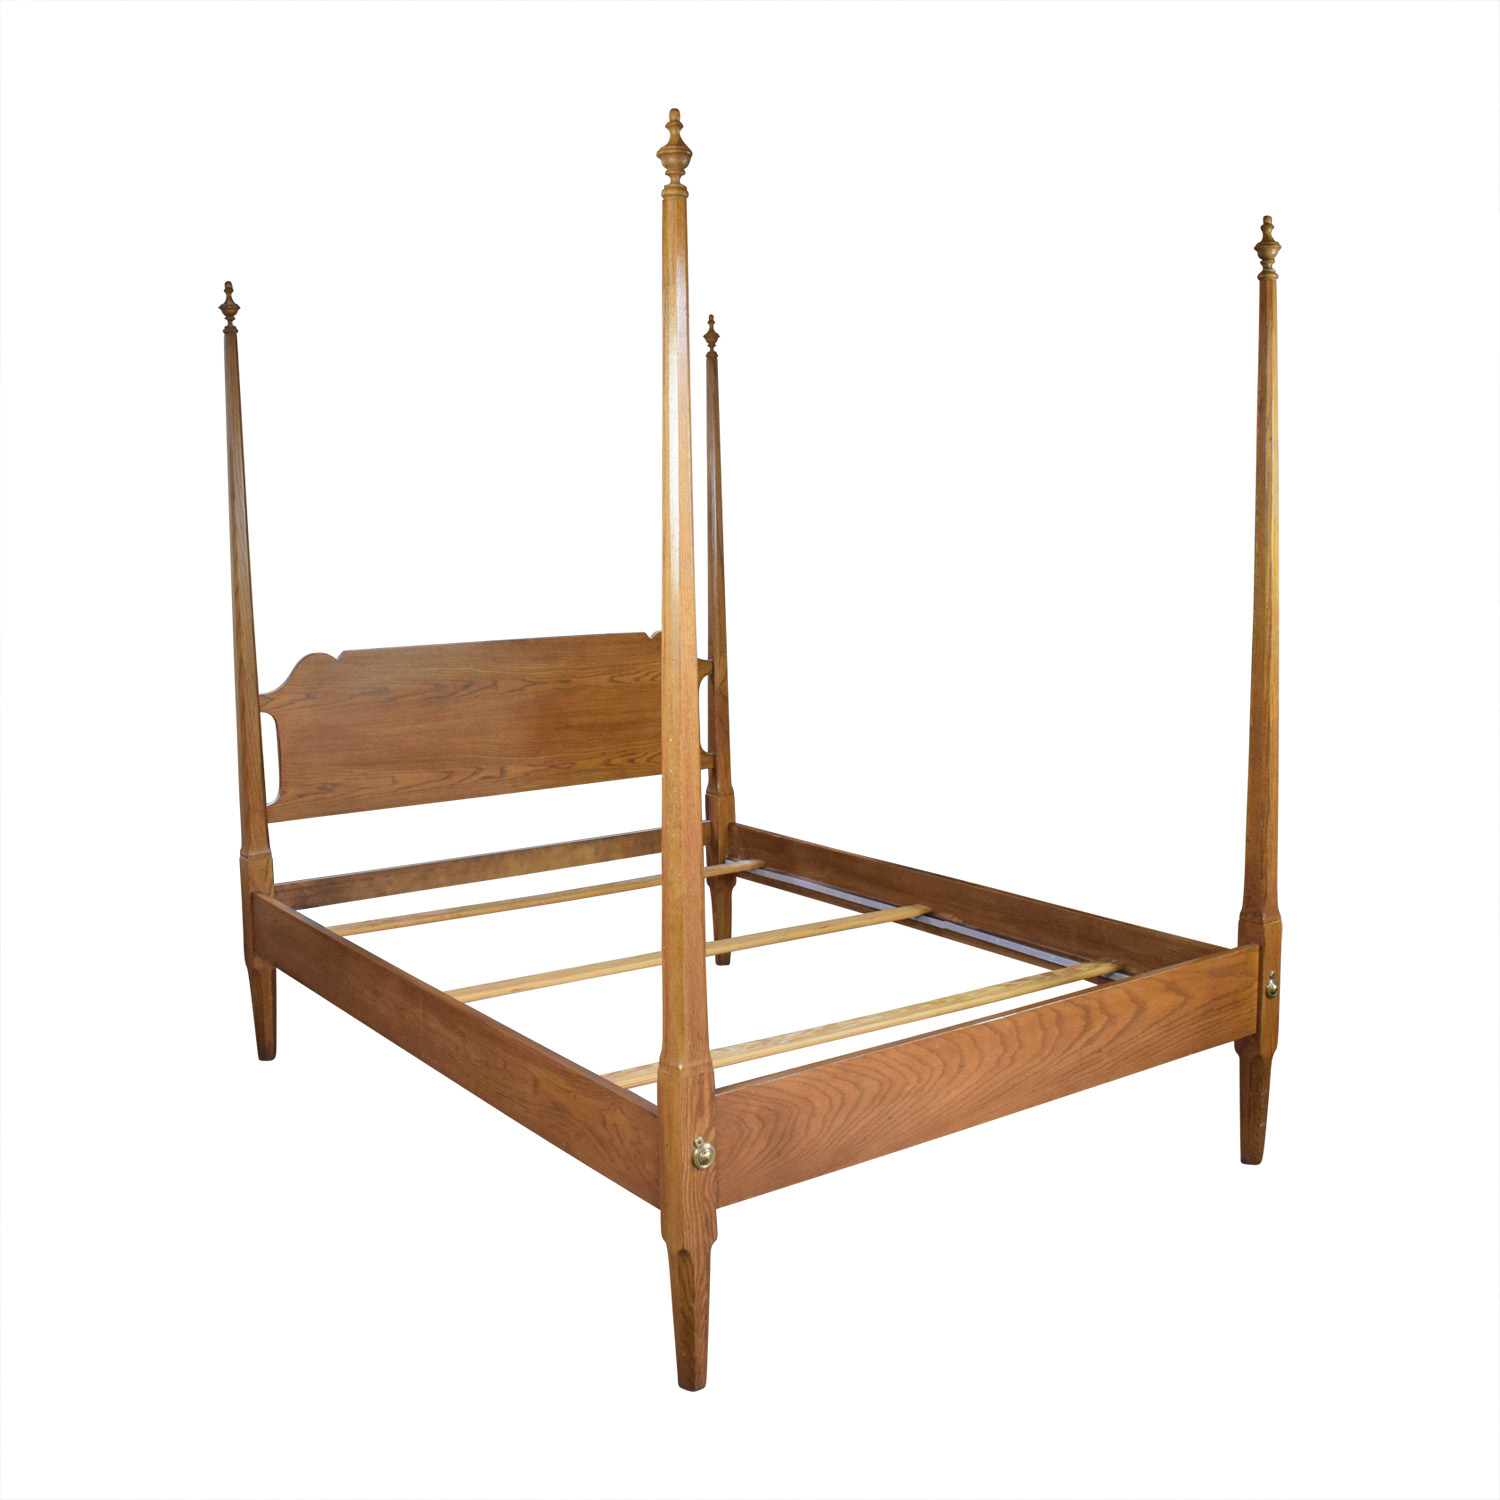 4 Poster Bed Frame Queen 88 Off Four Poster Wood Queen Bed Frame Beds